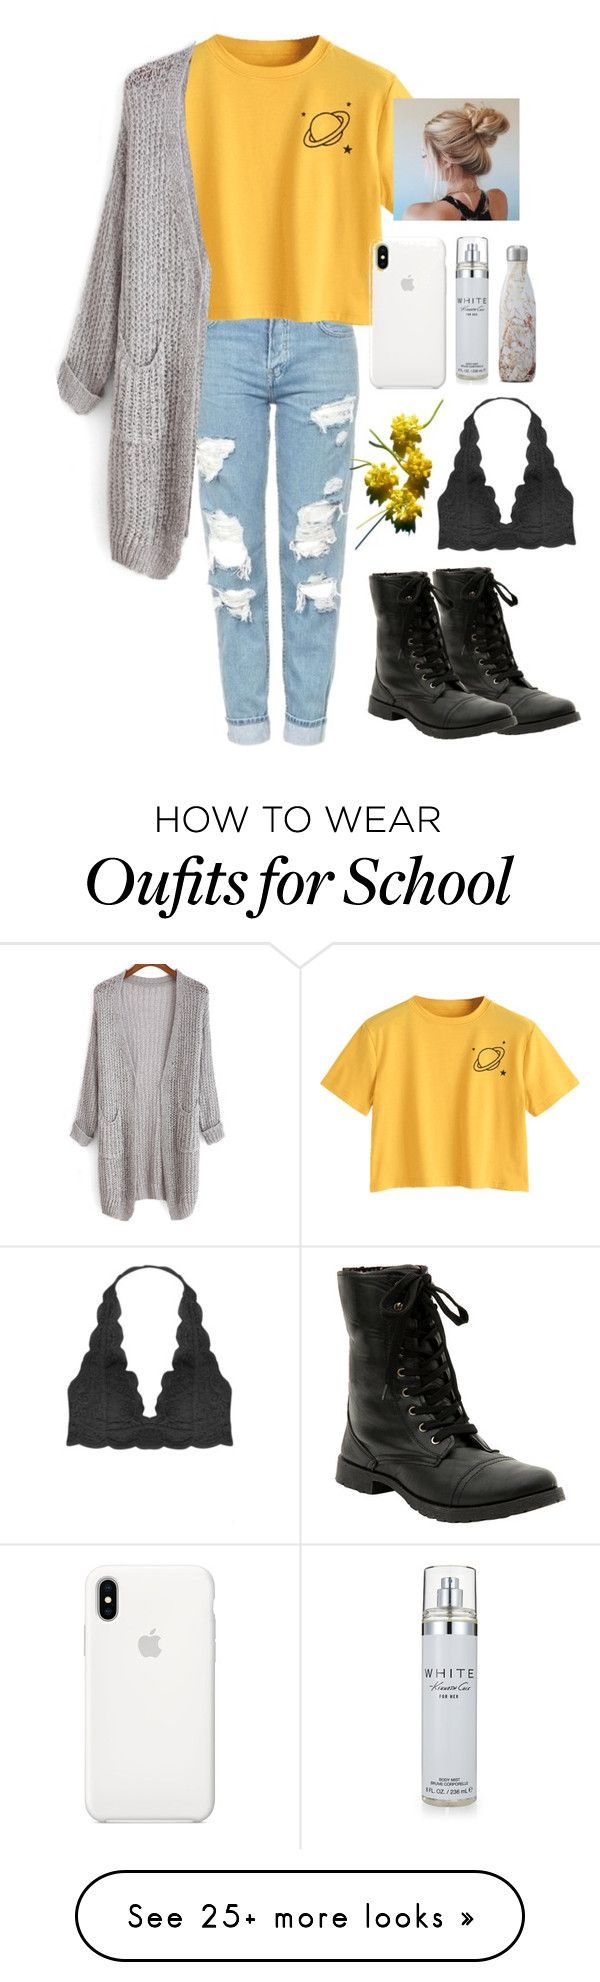 """school"" by whitpit on Polyvore featuring Hot Topic, Humble Chic, Apple, Kenneth Cole and S'well"